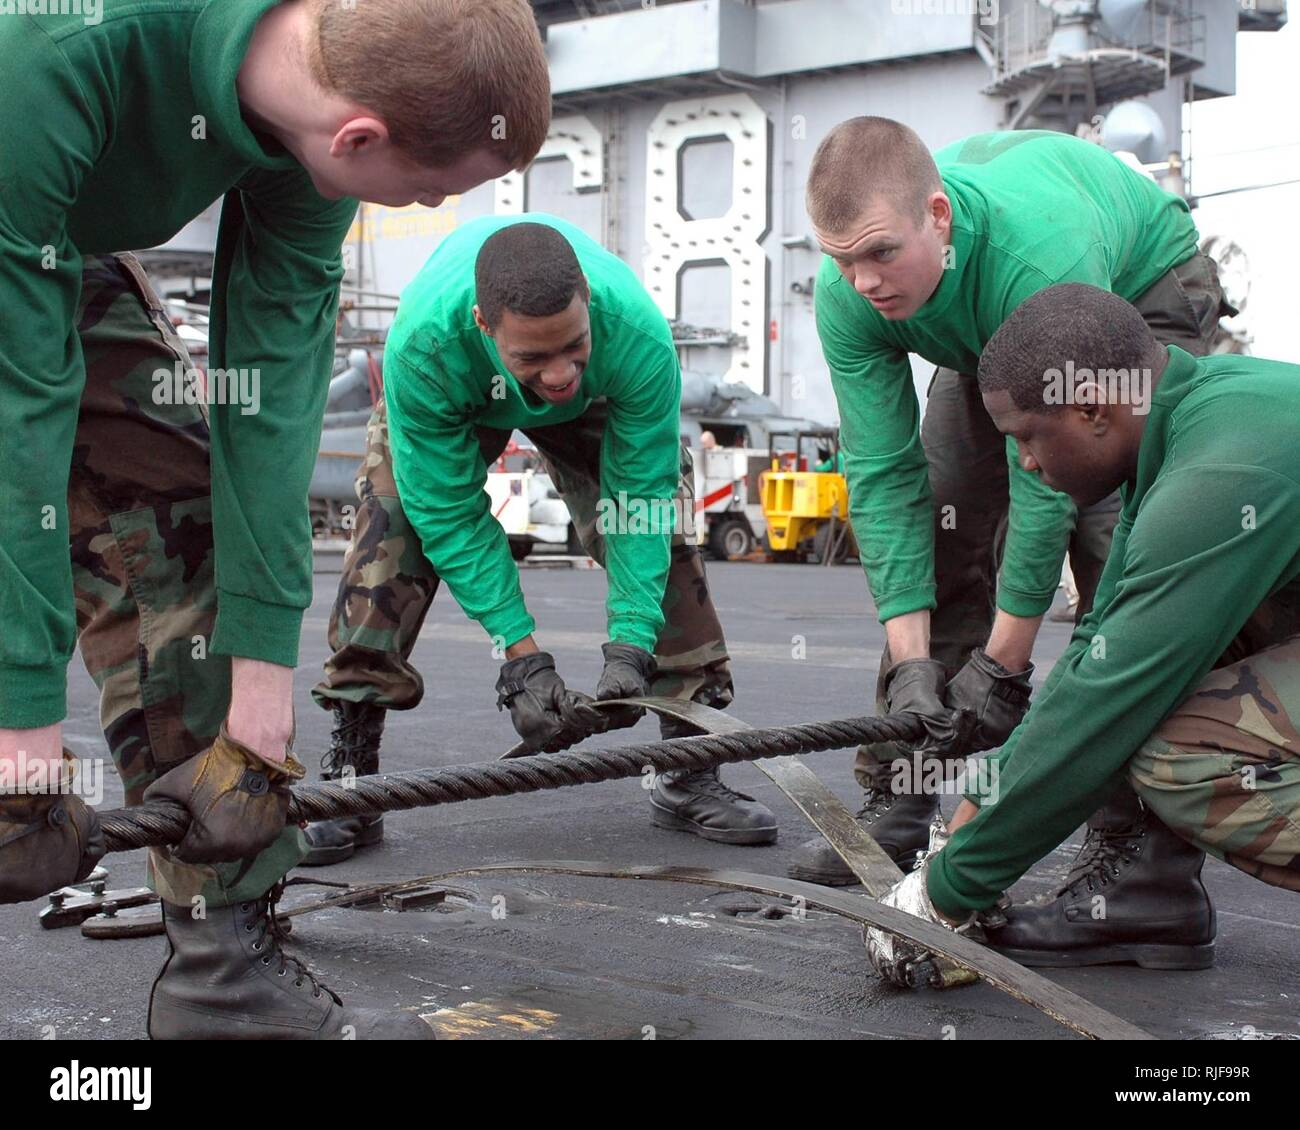 PACIFIC OCEAN (March 31, 2008) Sailors position a wire support under an arresting wire aboard the nuclear-powered aircraft carrier USS Nimitz (CVN 68). The wire support lifts the arresting wire off the deck enabling an aircraft tail hook to catch the wire during an arrested landing. Nimitz is deployed to the U.S. 7th Fleet operating in the western Pacific and Indian oceans. U.S. Navy - Stock Image